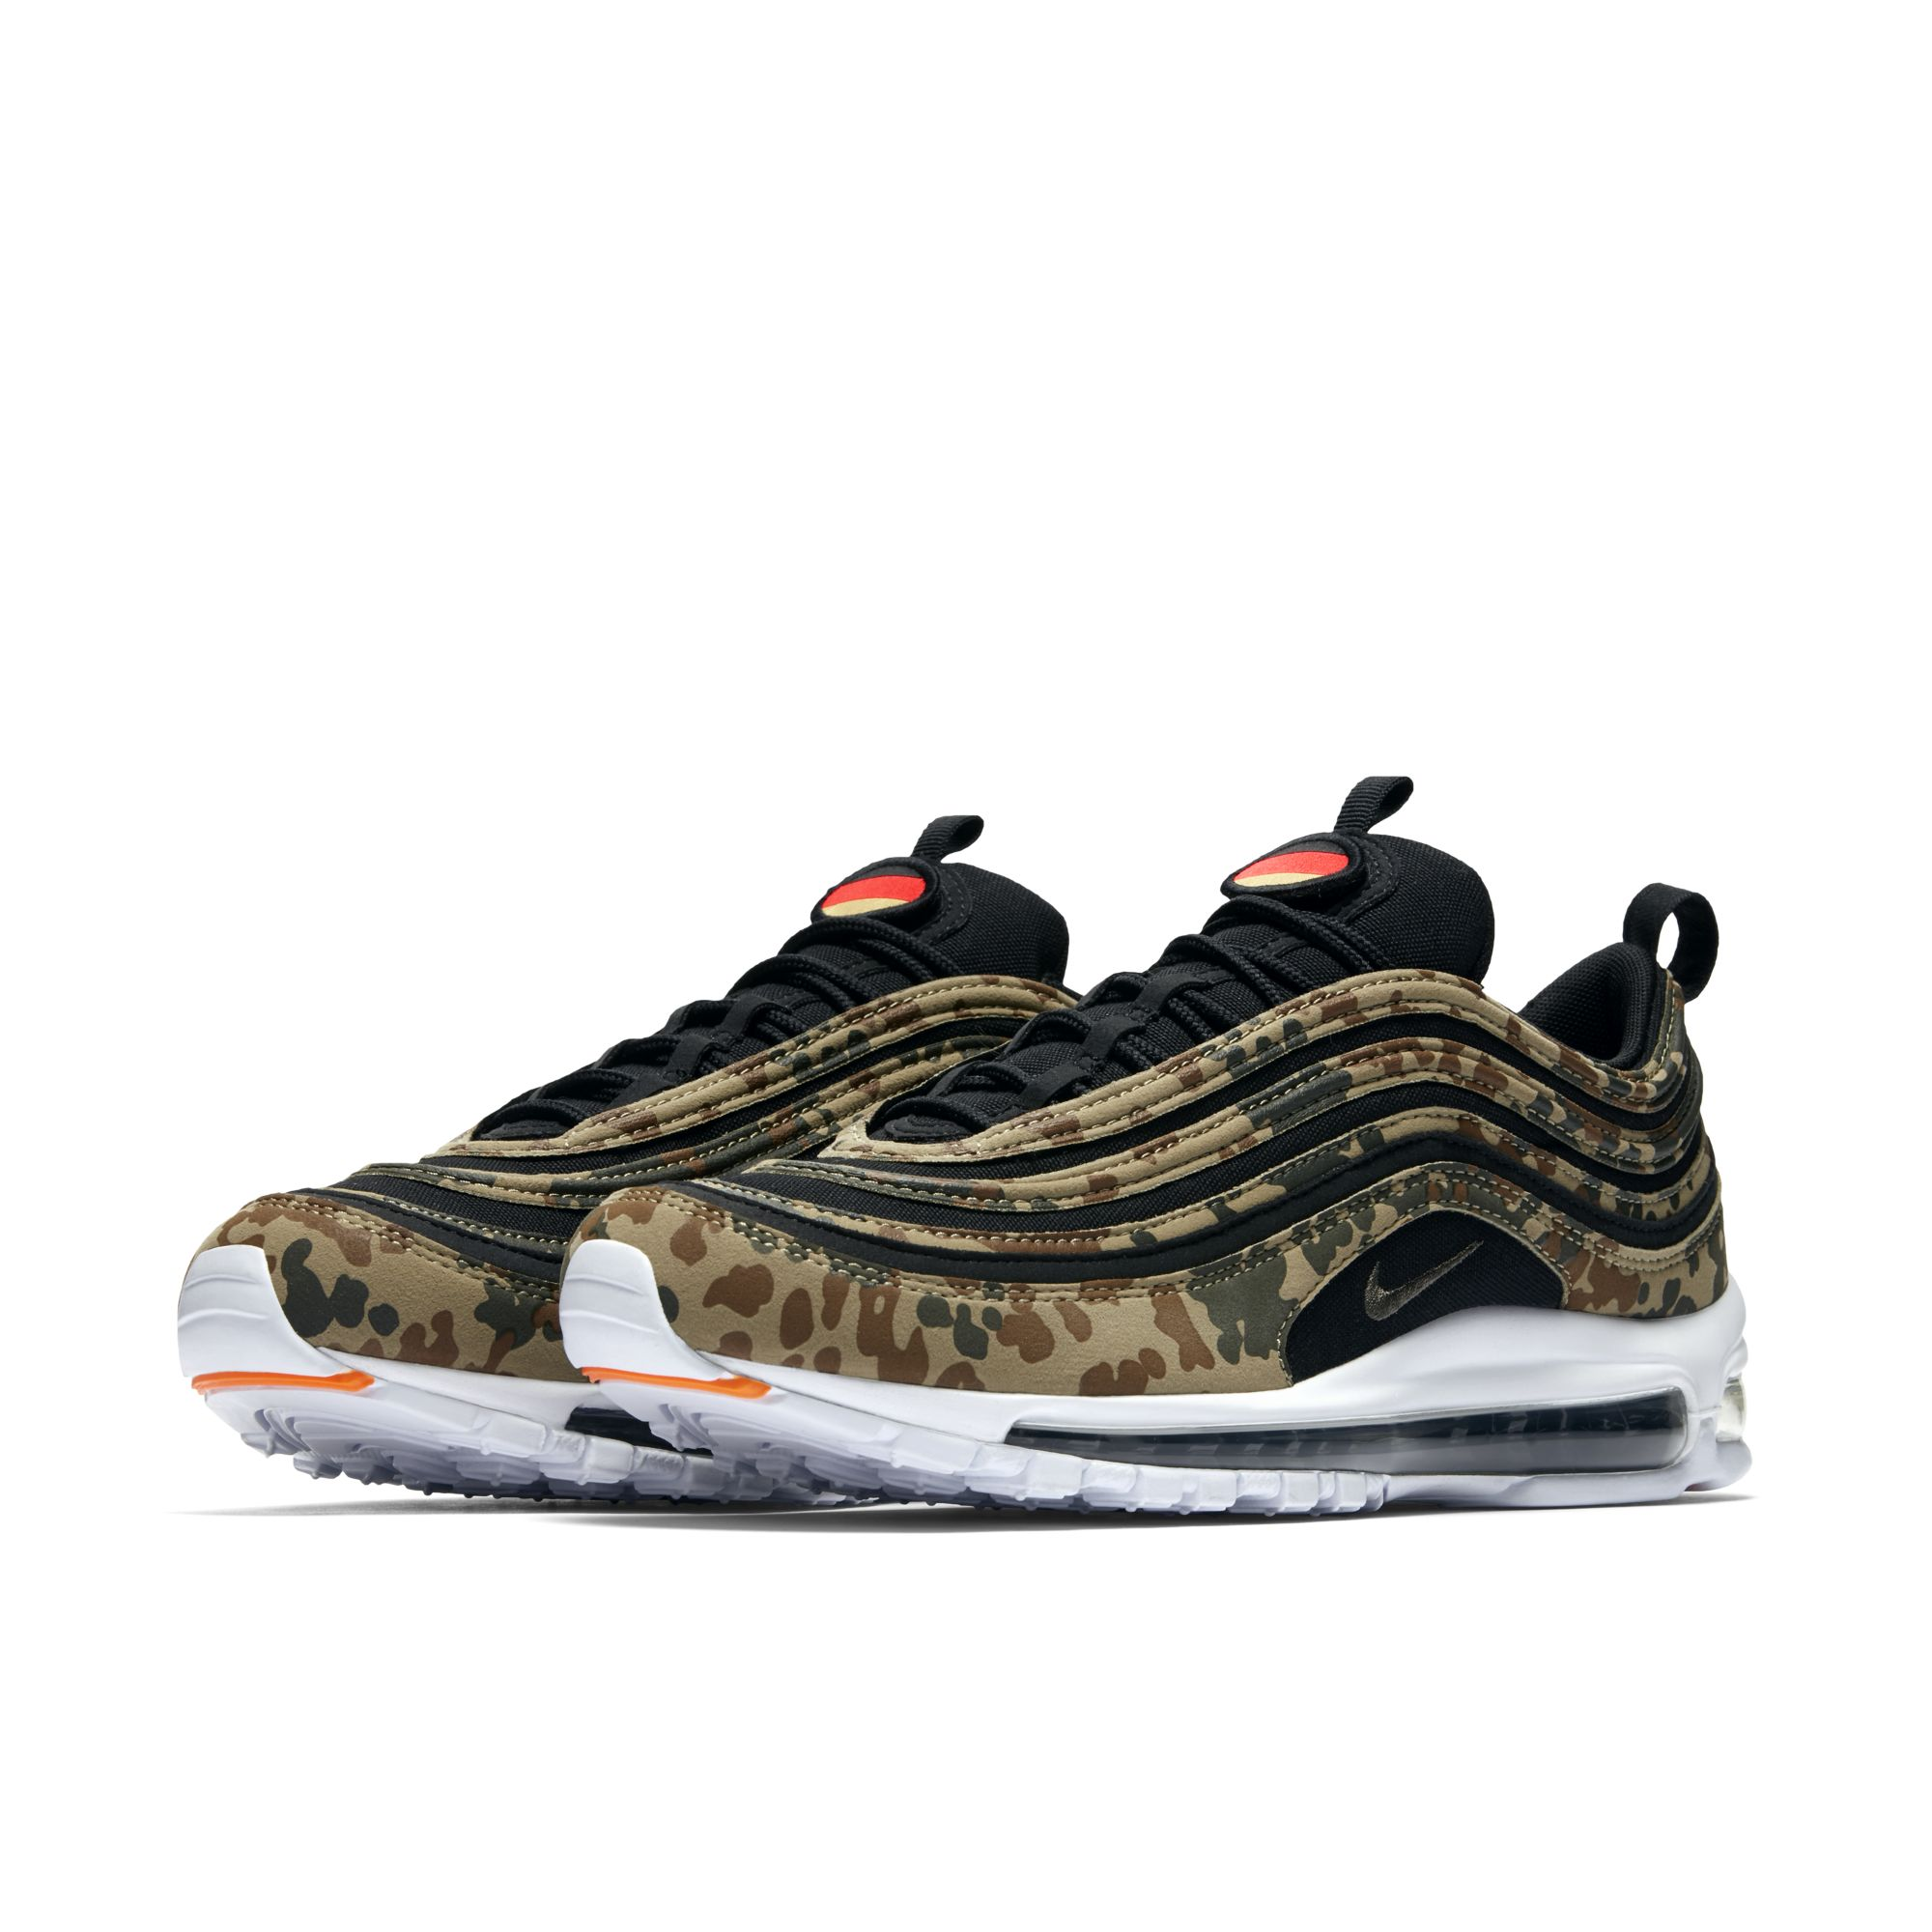 Nike Air Max 97 Premium Italy 'Country Camo Pack' | More